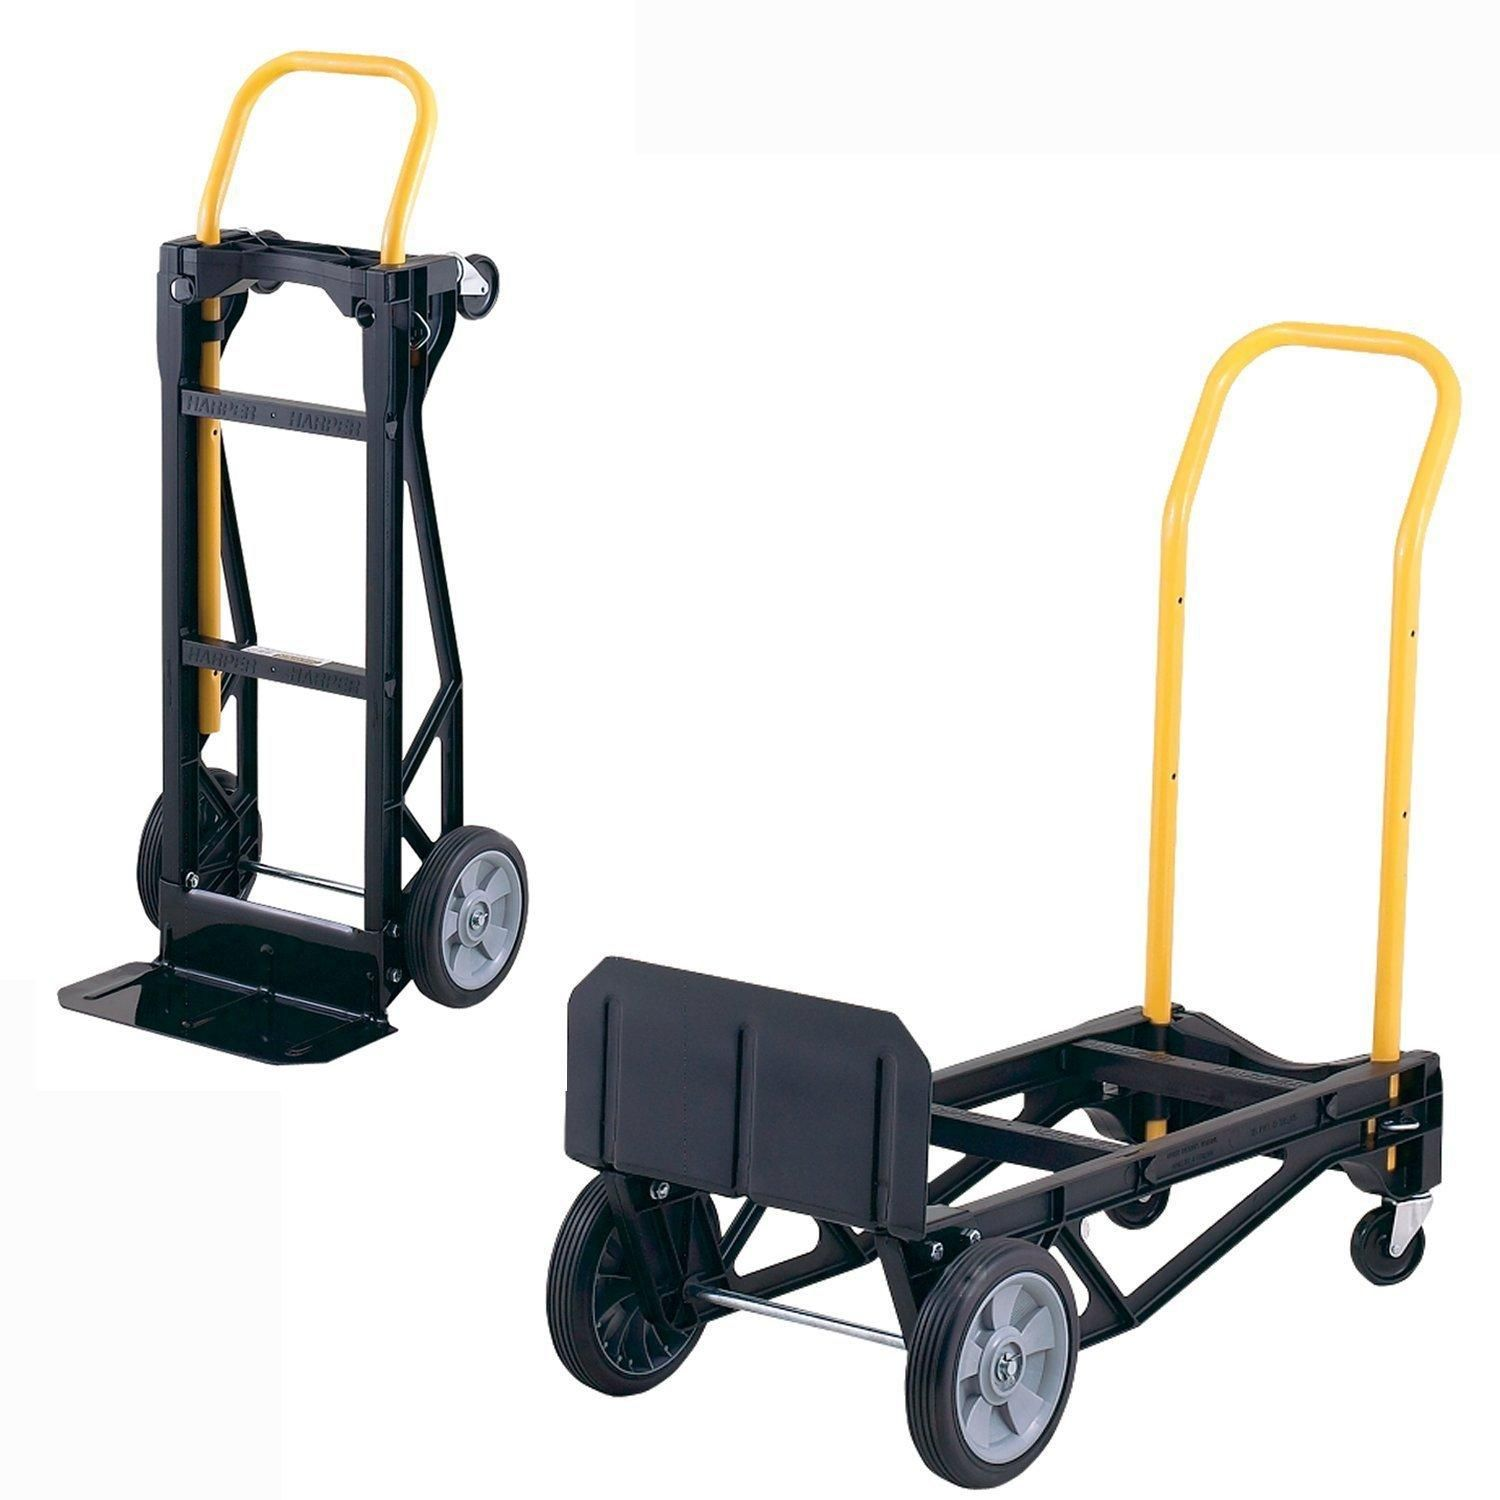 Cosco Shifter 300-Pound Capacity Multi-Position Folding Hand Truck and Cart Yellow